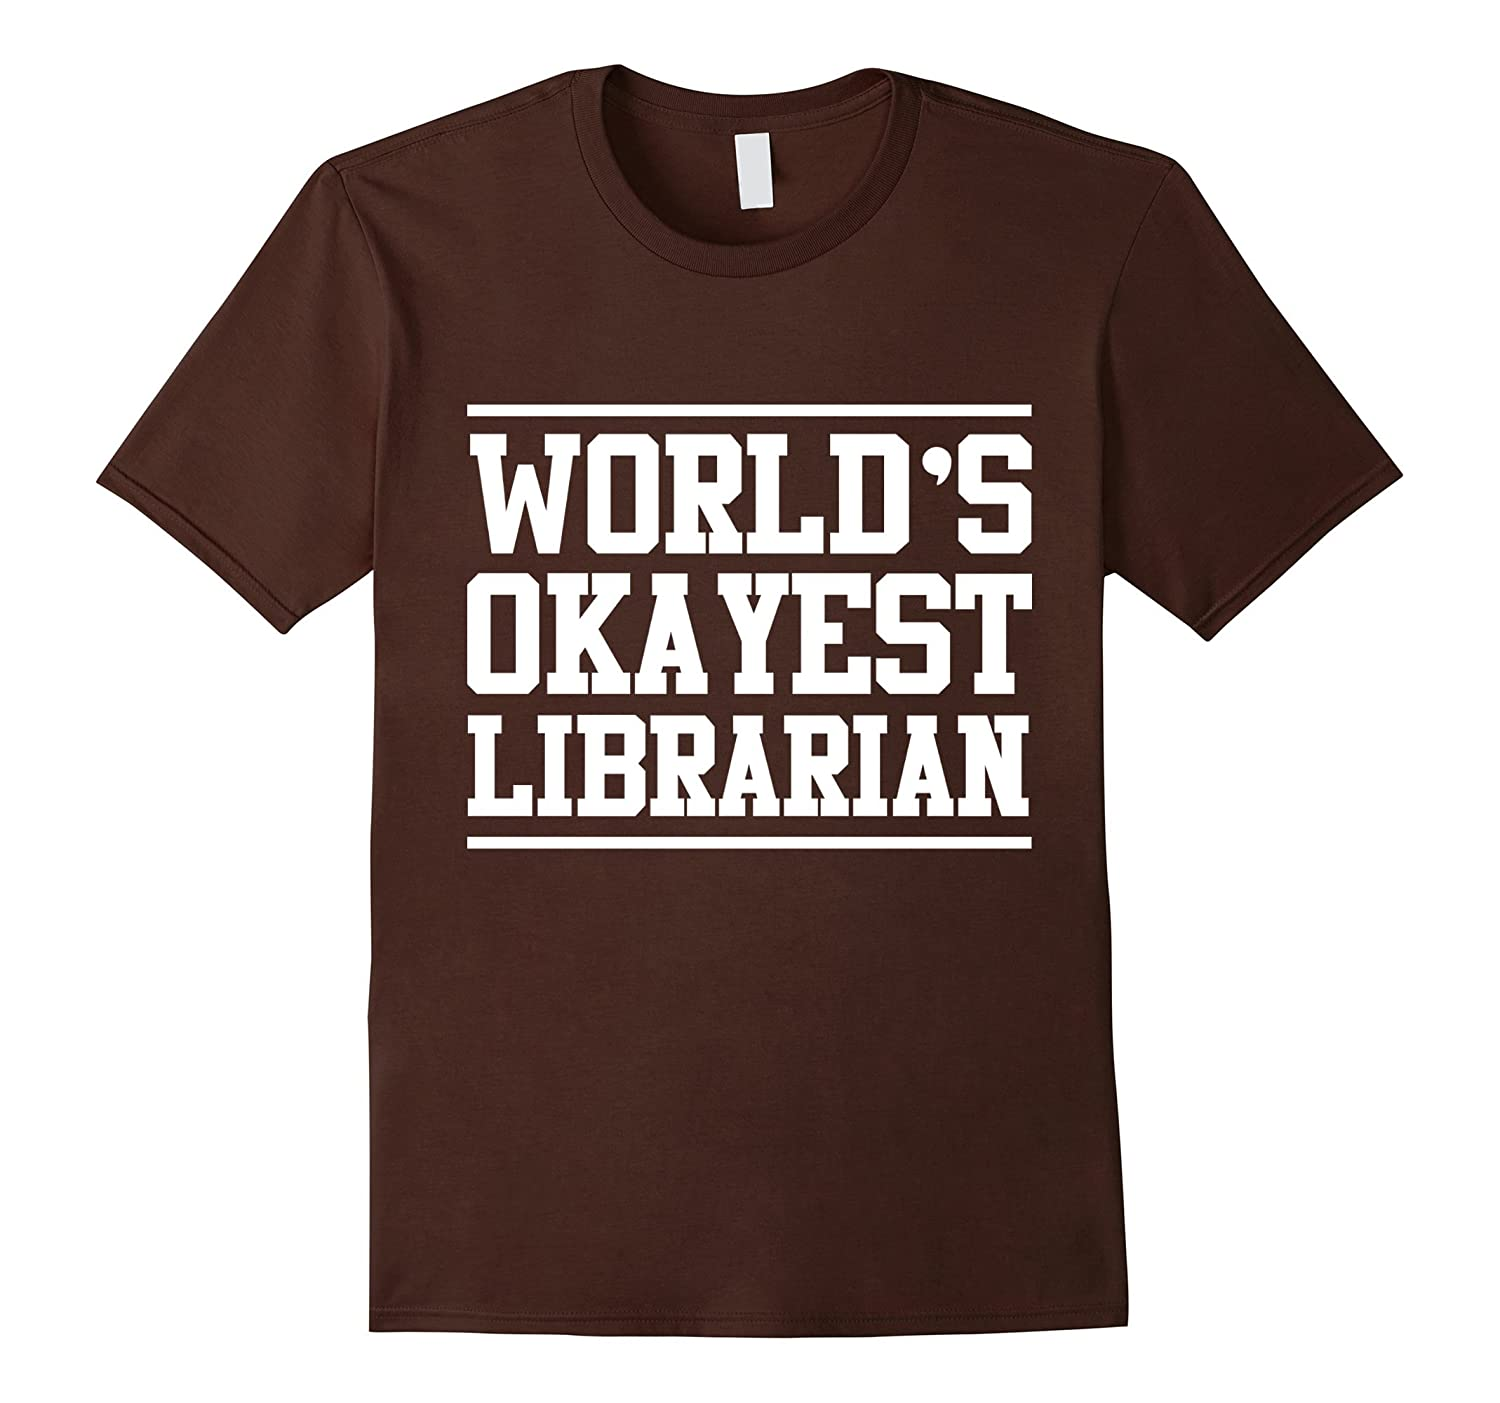 Worlds okayest librarian funny t shirt td theteejob for Librarian t shirt sayings